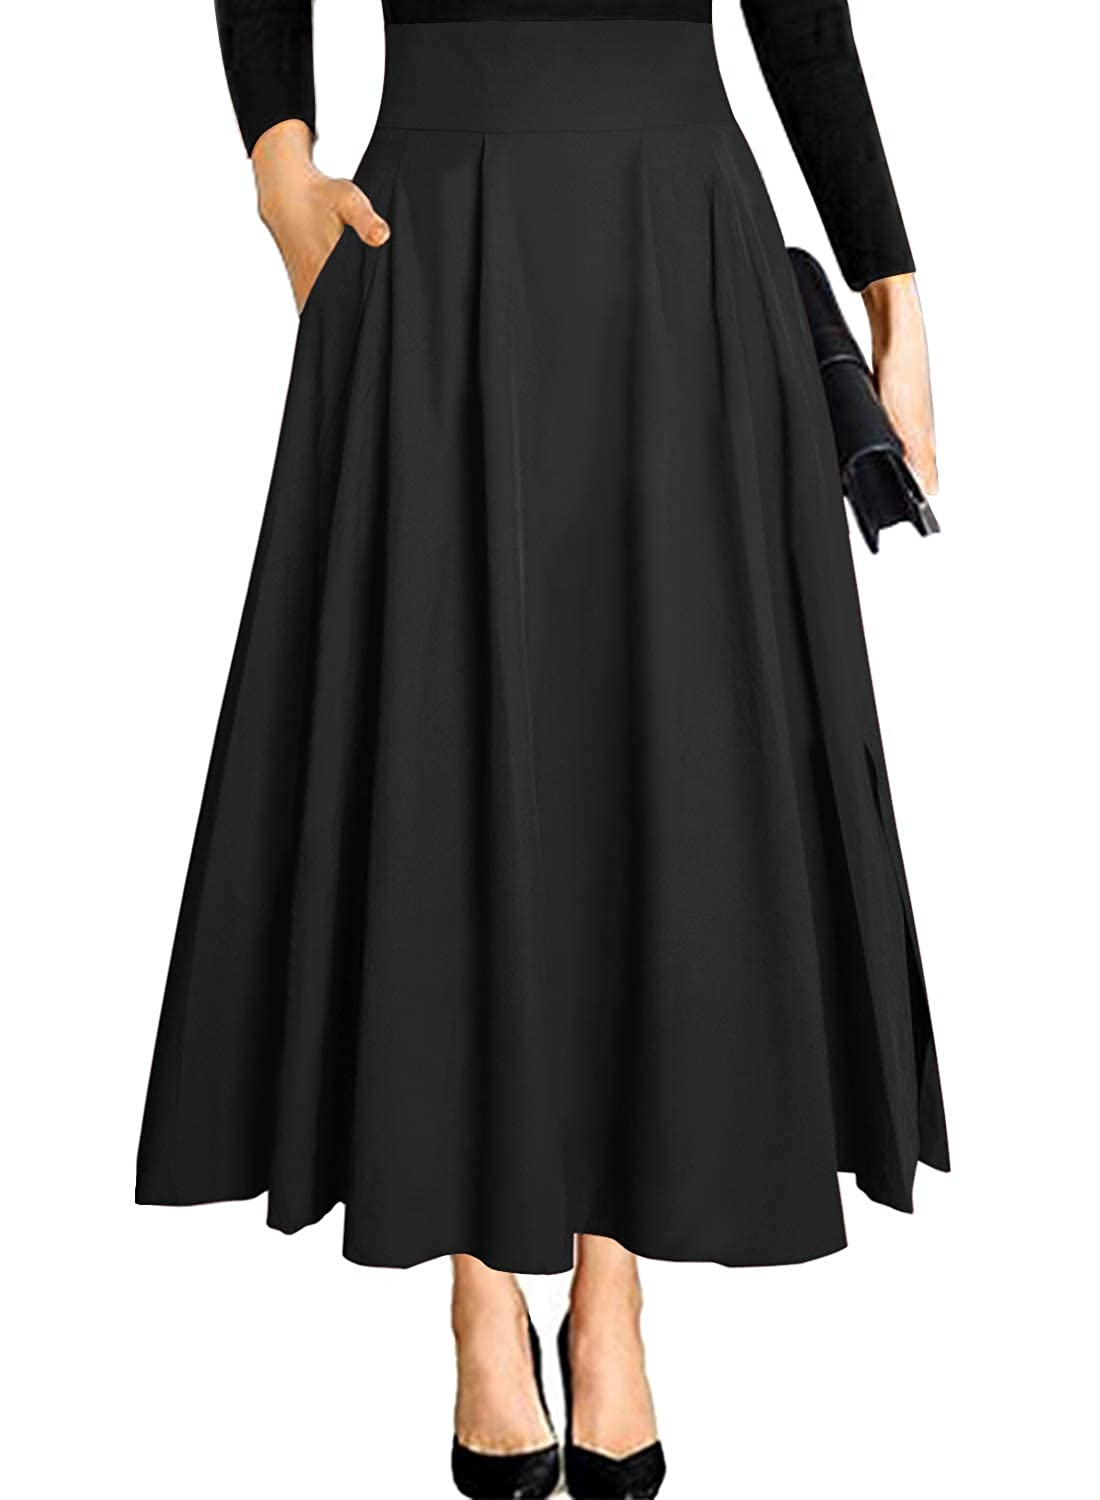 50s Skirt Styles | Poodle Skirts, Circle Skirts, Pencil Skirts 1950s Ranphee Womens Ankle Length High Waist A-line Flowy Long Maxi Skirt with Pockets $25.99 AT vintagedancer.com